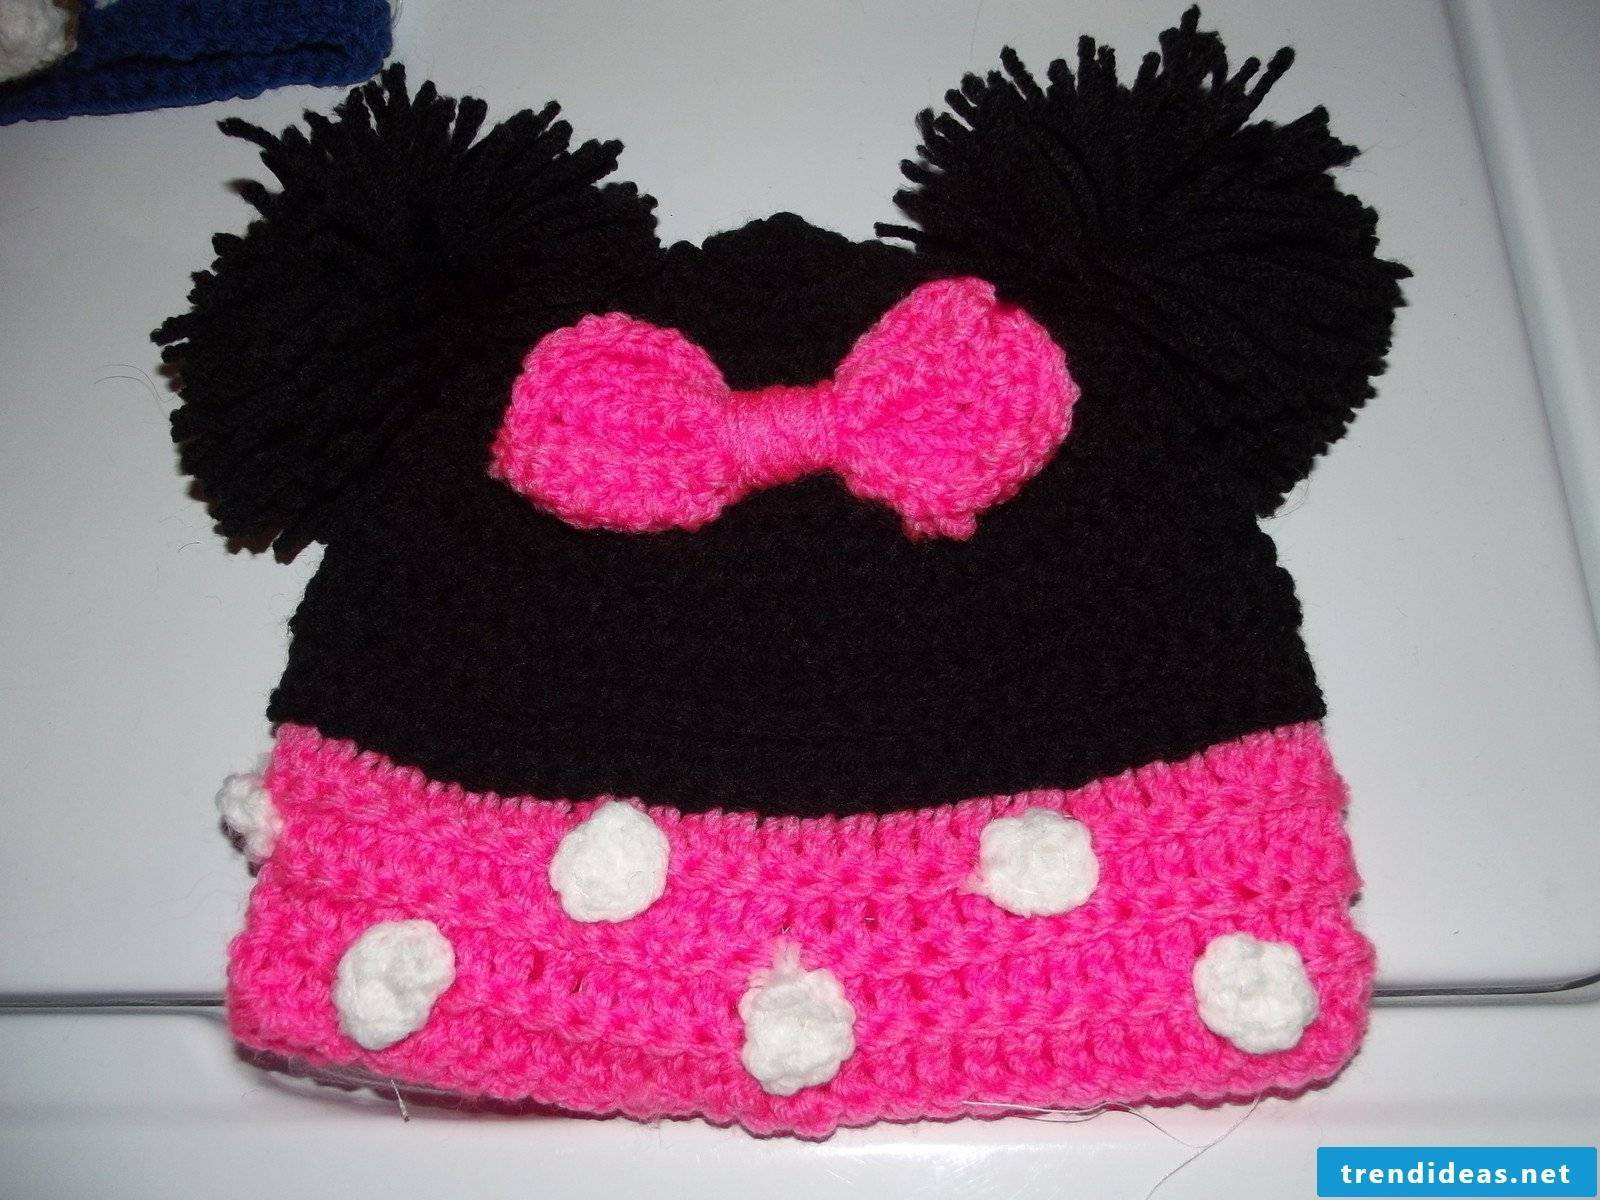 Beanie with pompoms - a true classic